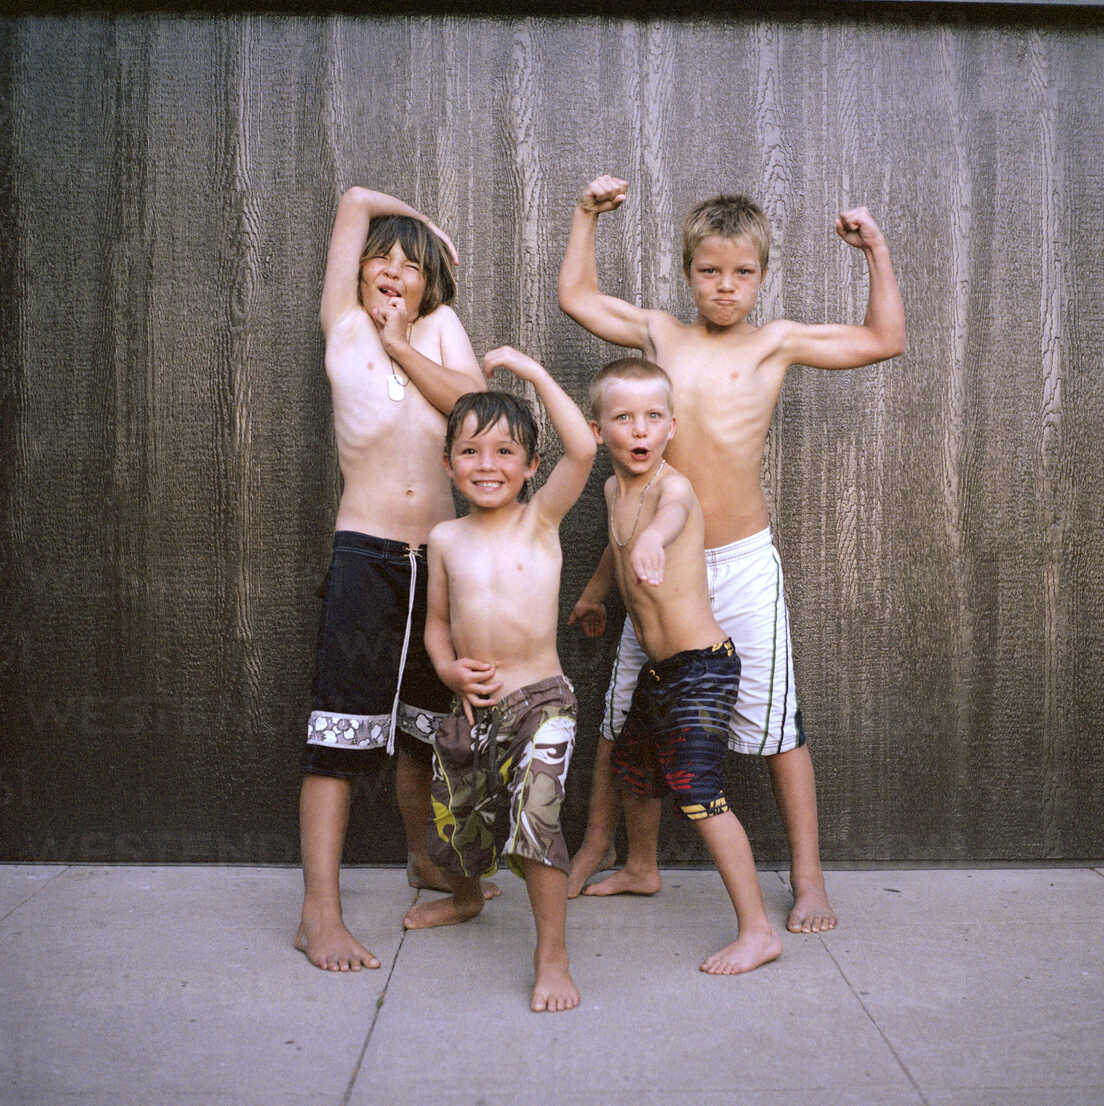 Portrait of boys flexing muscles while standing against wall - CAVF38622 - Cavan Images/Westend61